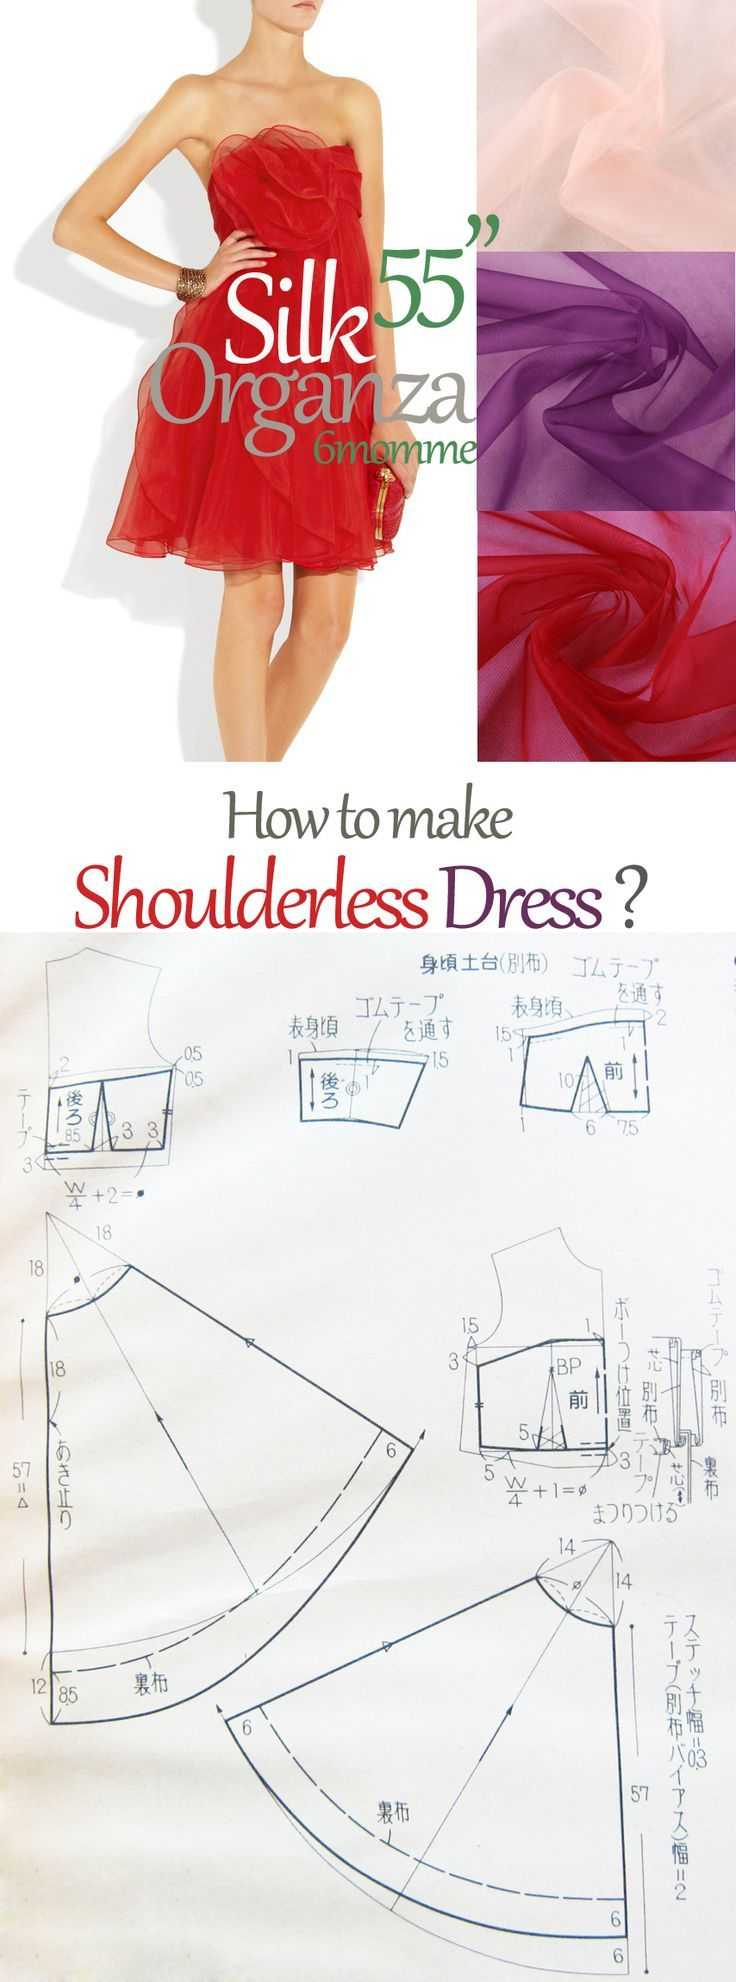 Free sewing pattern for a prom dress. I think they mean strapless dress, not shoulderless? More free sewing patterns at http://www.sewinlove.com.au/free-sewing-patterns/